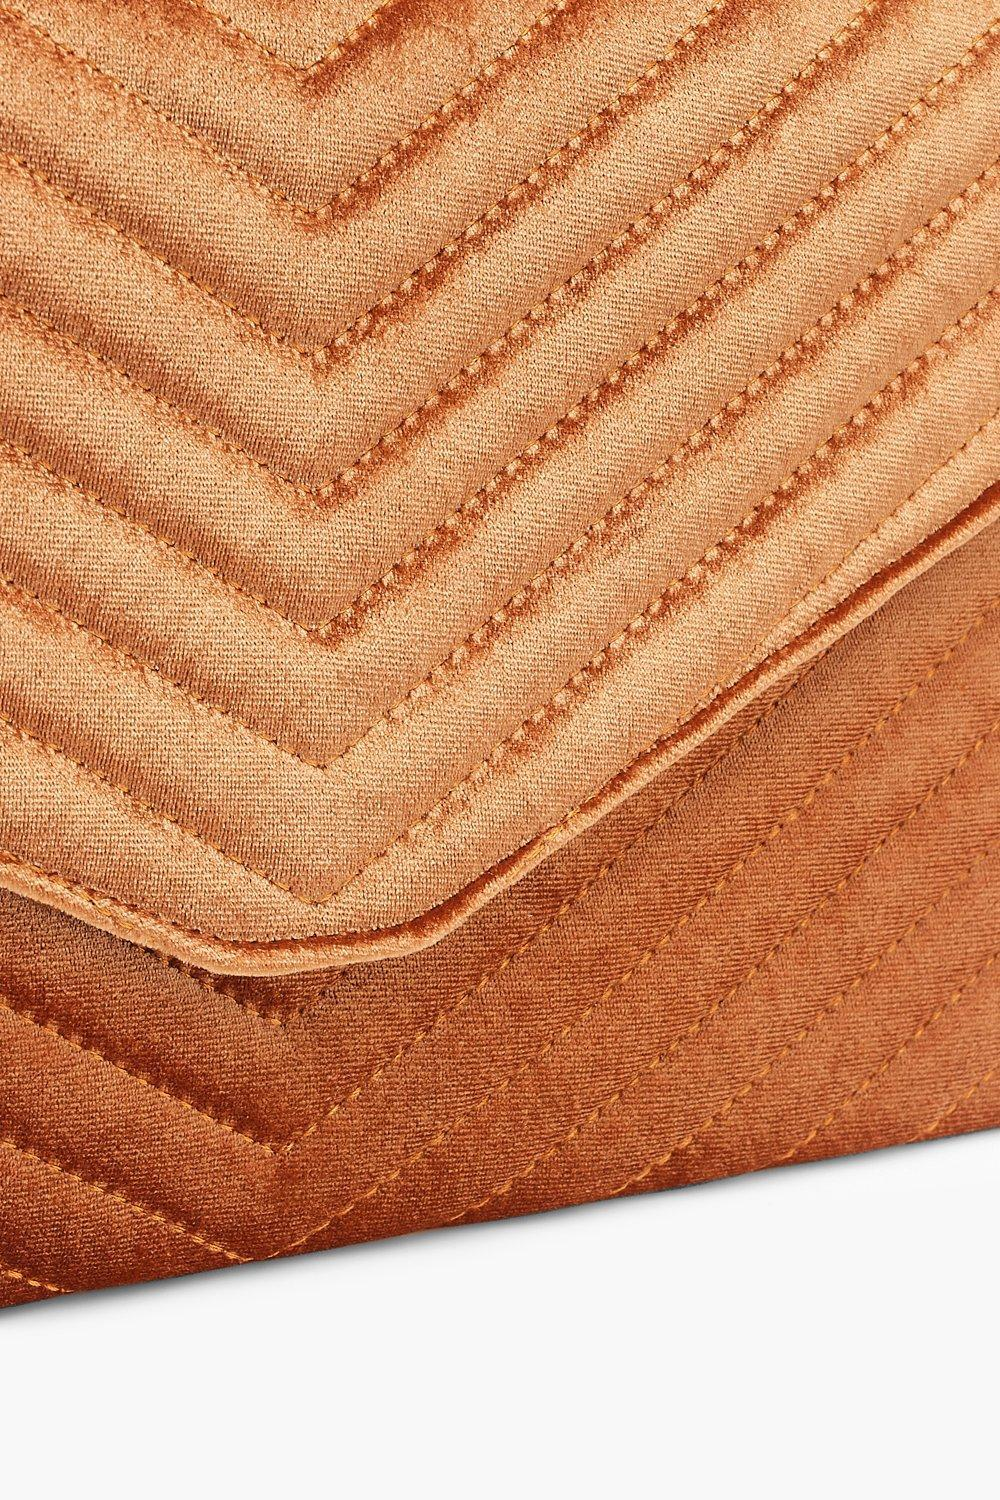 Boohoo Quilted Velvet Clutch And Chain in Brown - Lyst 0ff08a79c0c94